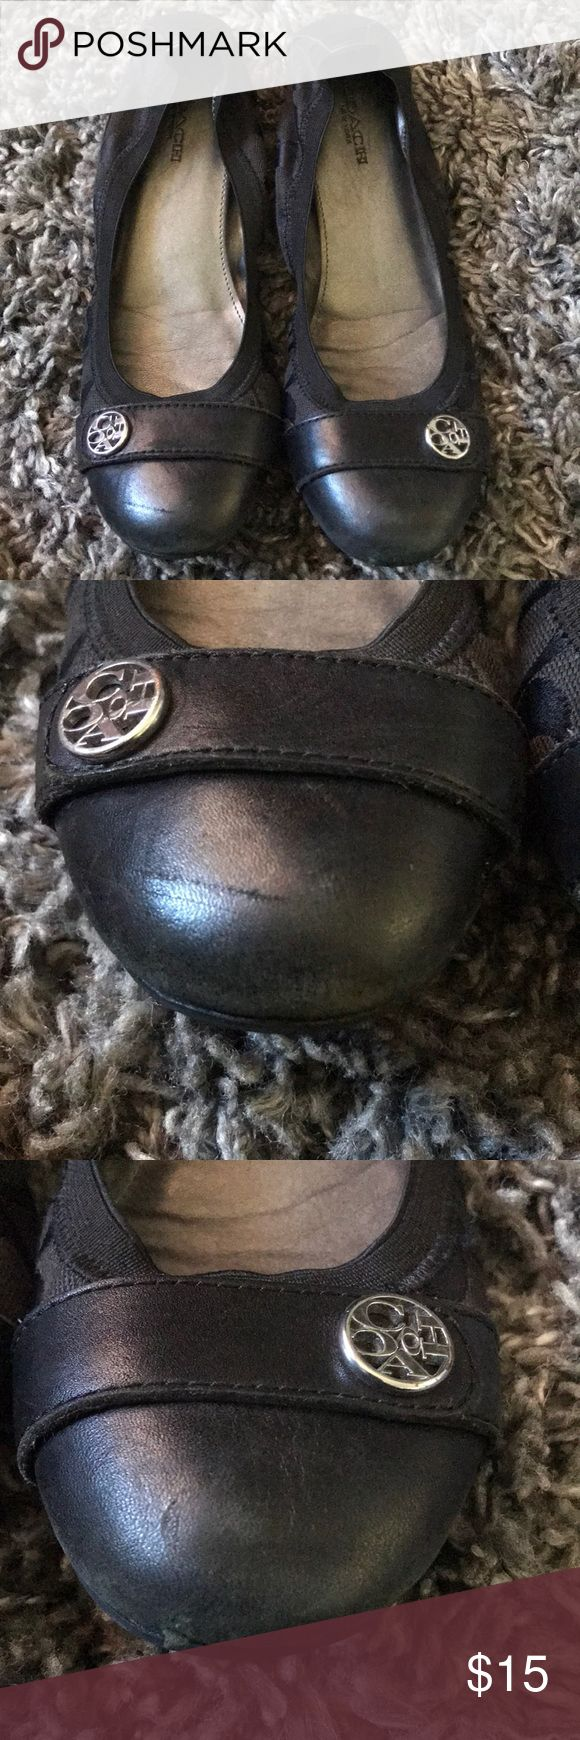 *Used*Coach Flats Sz 6.5 womens Black Coach Flats with silver metal coach emblem. Flats have part leather and fabric. Please refer to pictures for more details. Coach Shoes Flats & Loafers